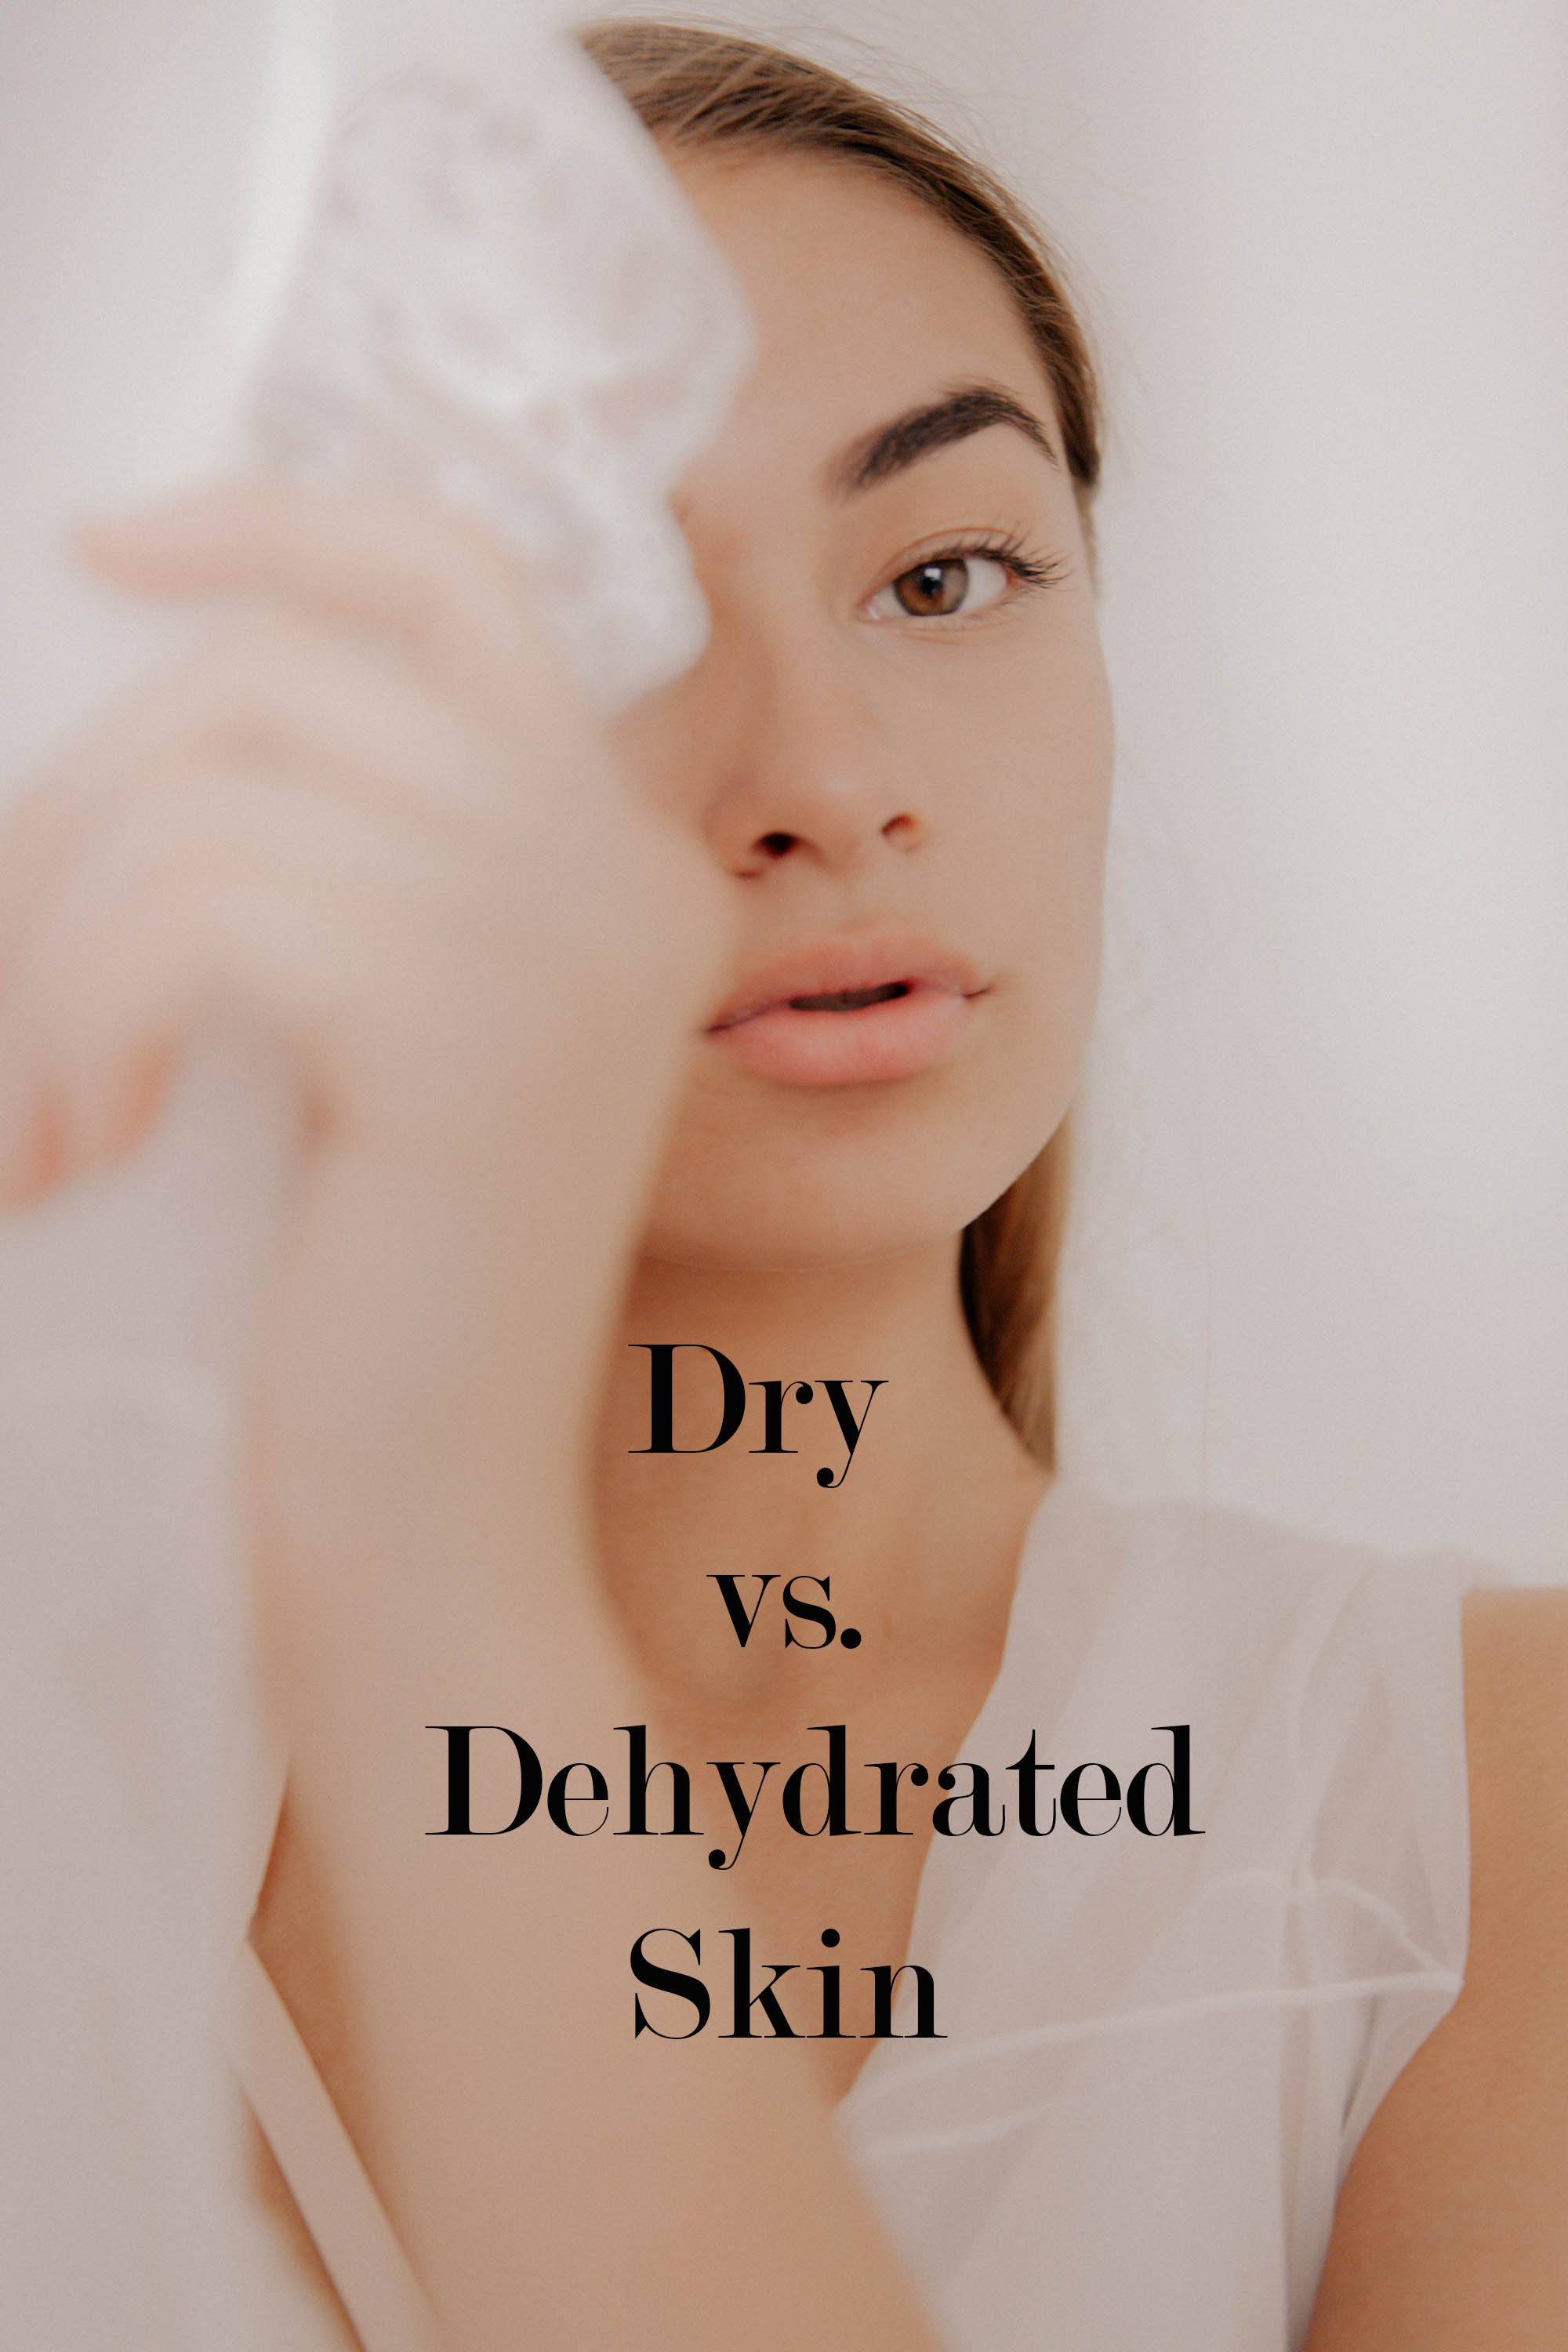 Is My Skin Dry or Dehydrated?